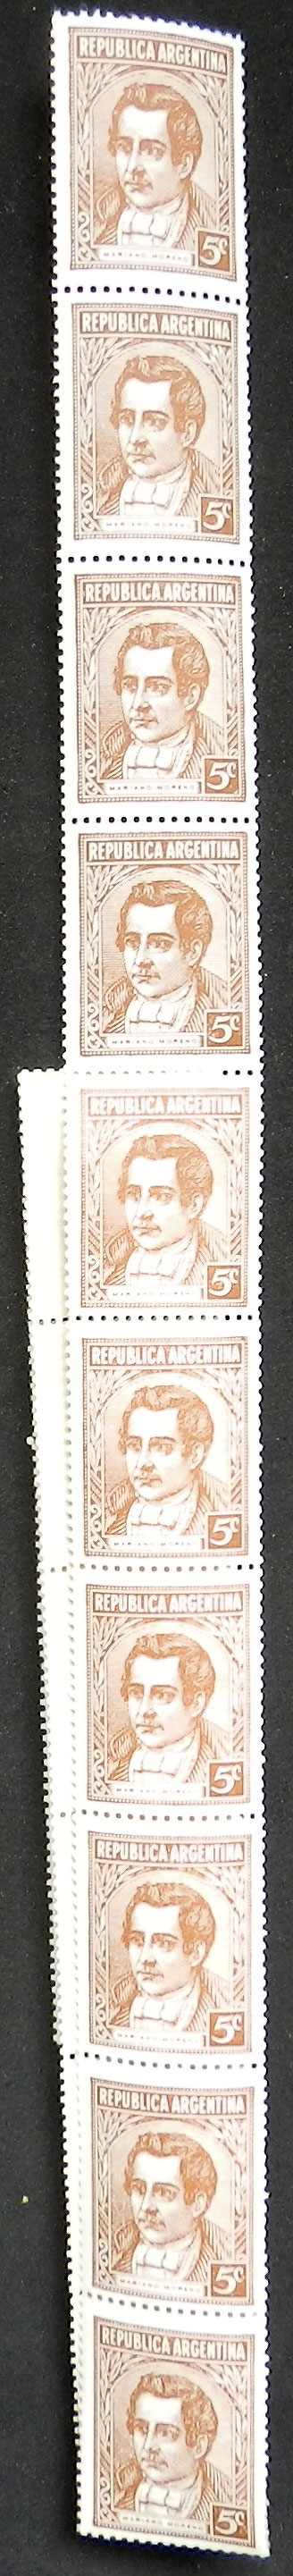 Lot 51 - Argentina general issues -  Guillermo Jalil - Philatino Auction # 2004 ARGENTINA: Special January auction, 101 RARE LOTS 101!